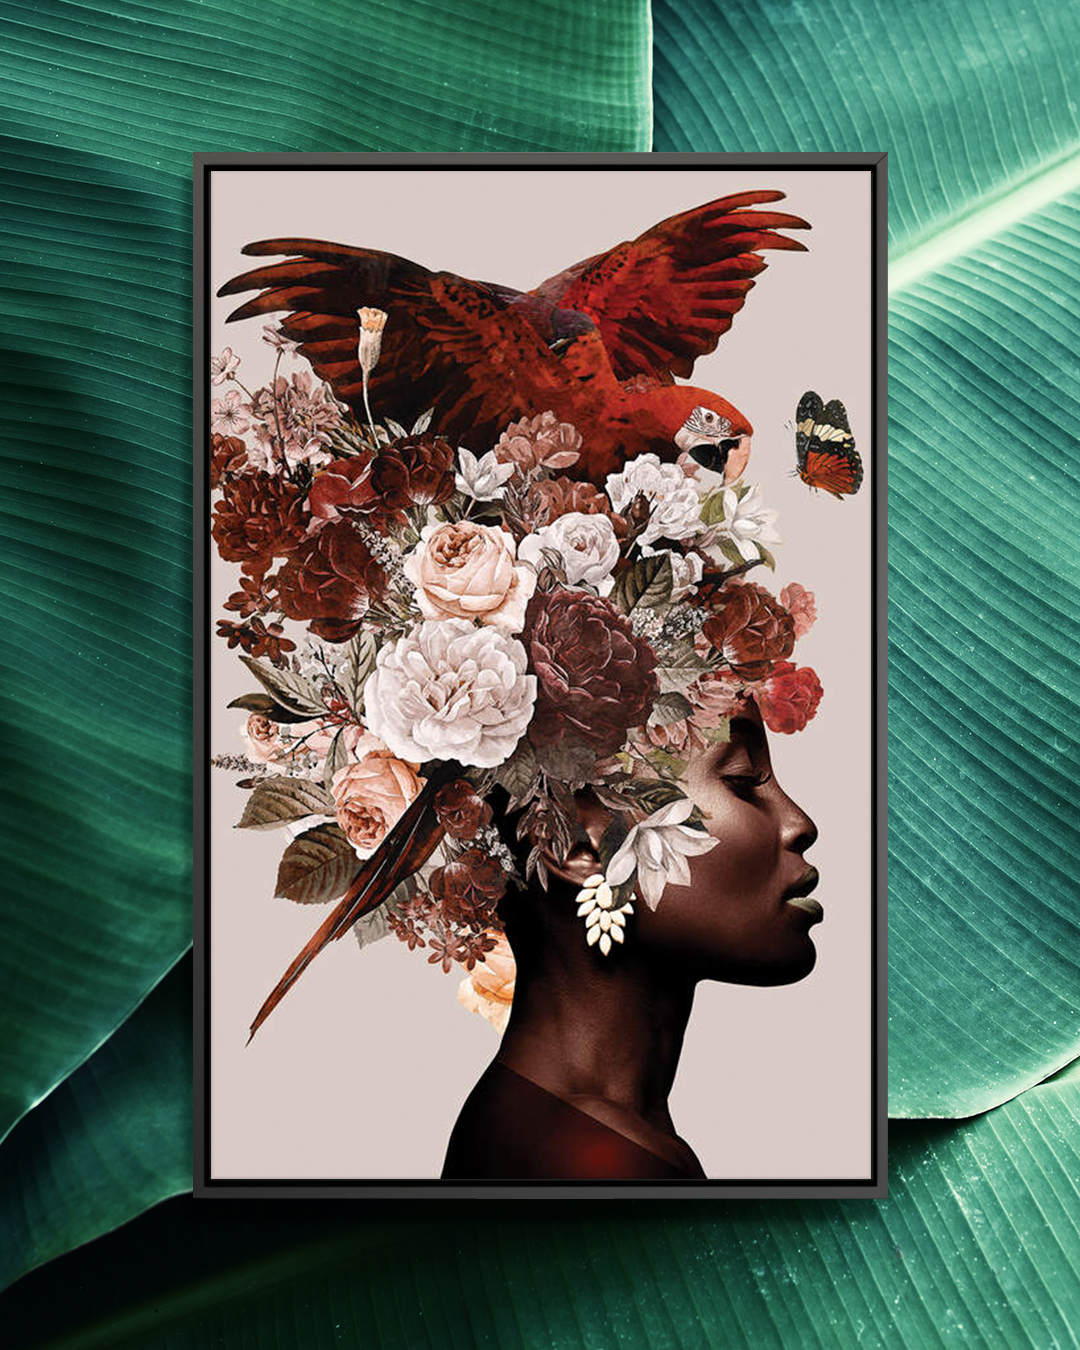 """Woman With Flower I"" by Danilo de Alexandria shows the profile of a woman with a large floral arrangement on her head and a red parrot flapping its wings on top of it."